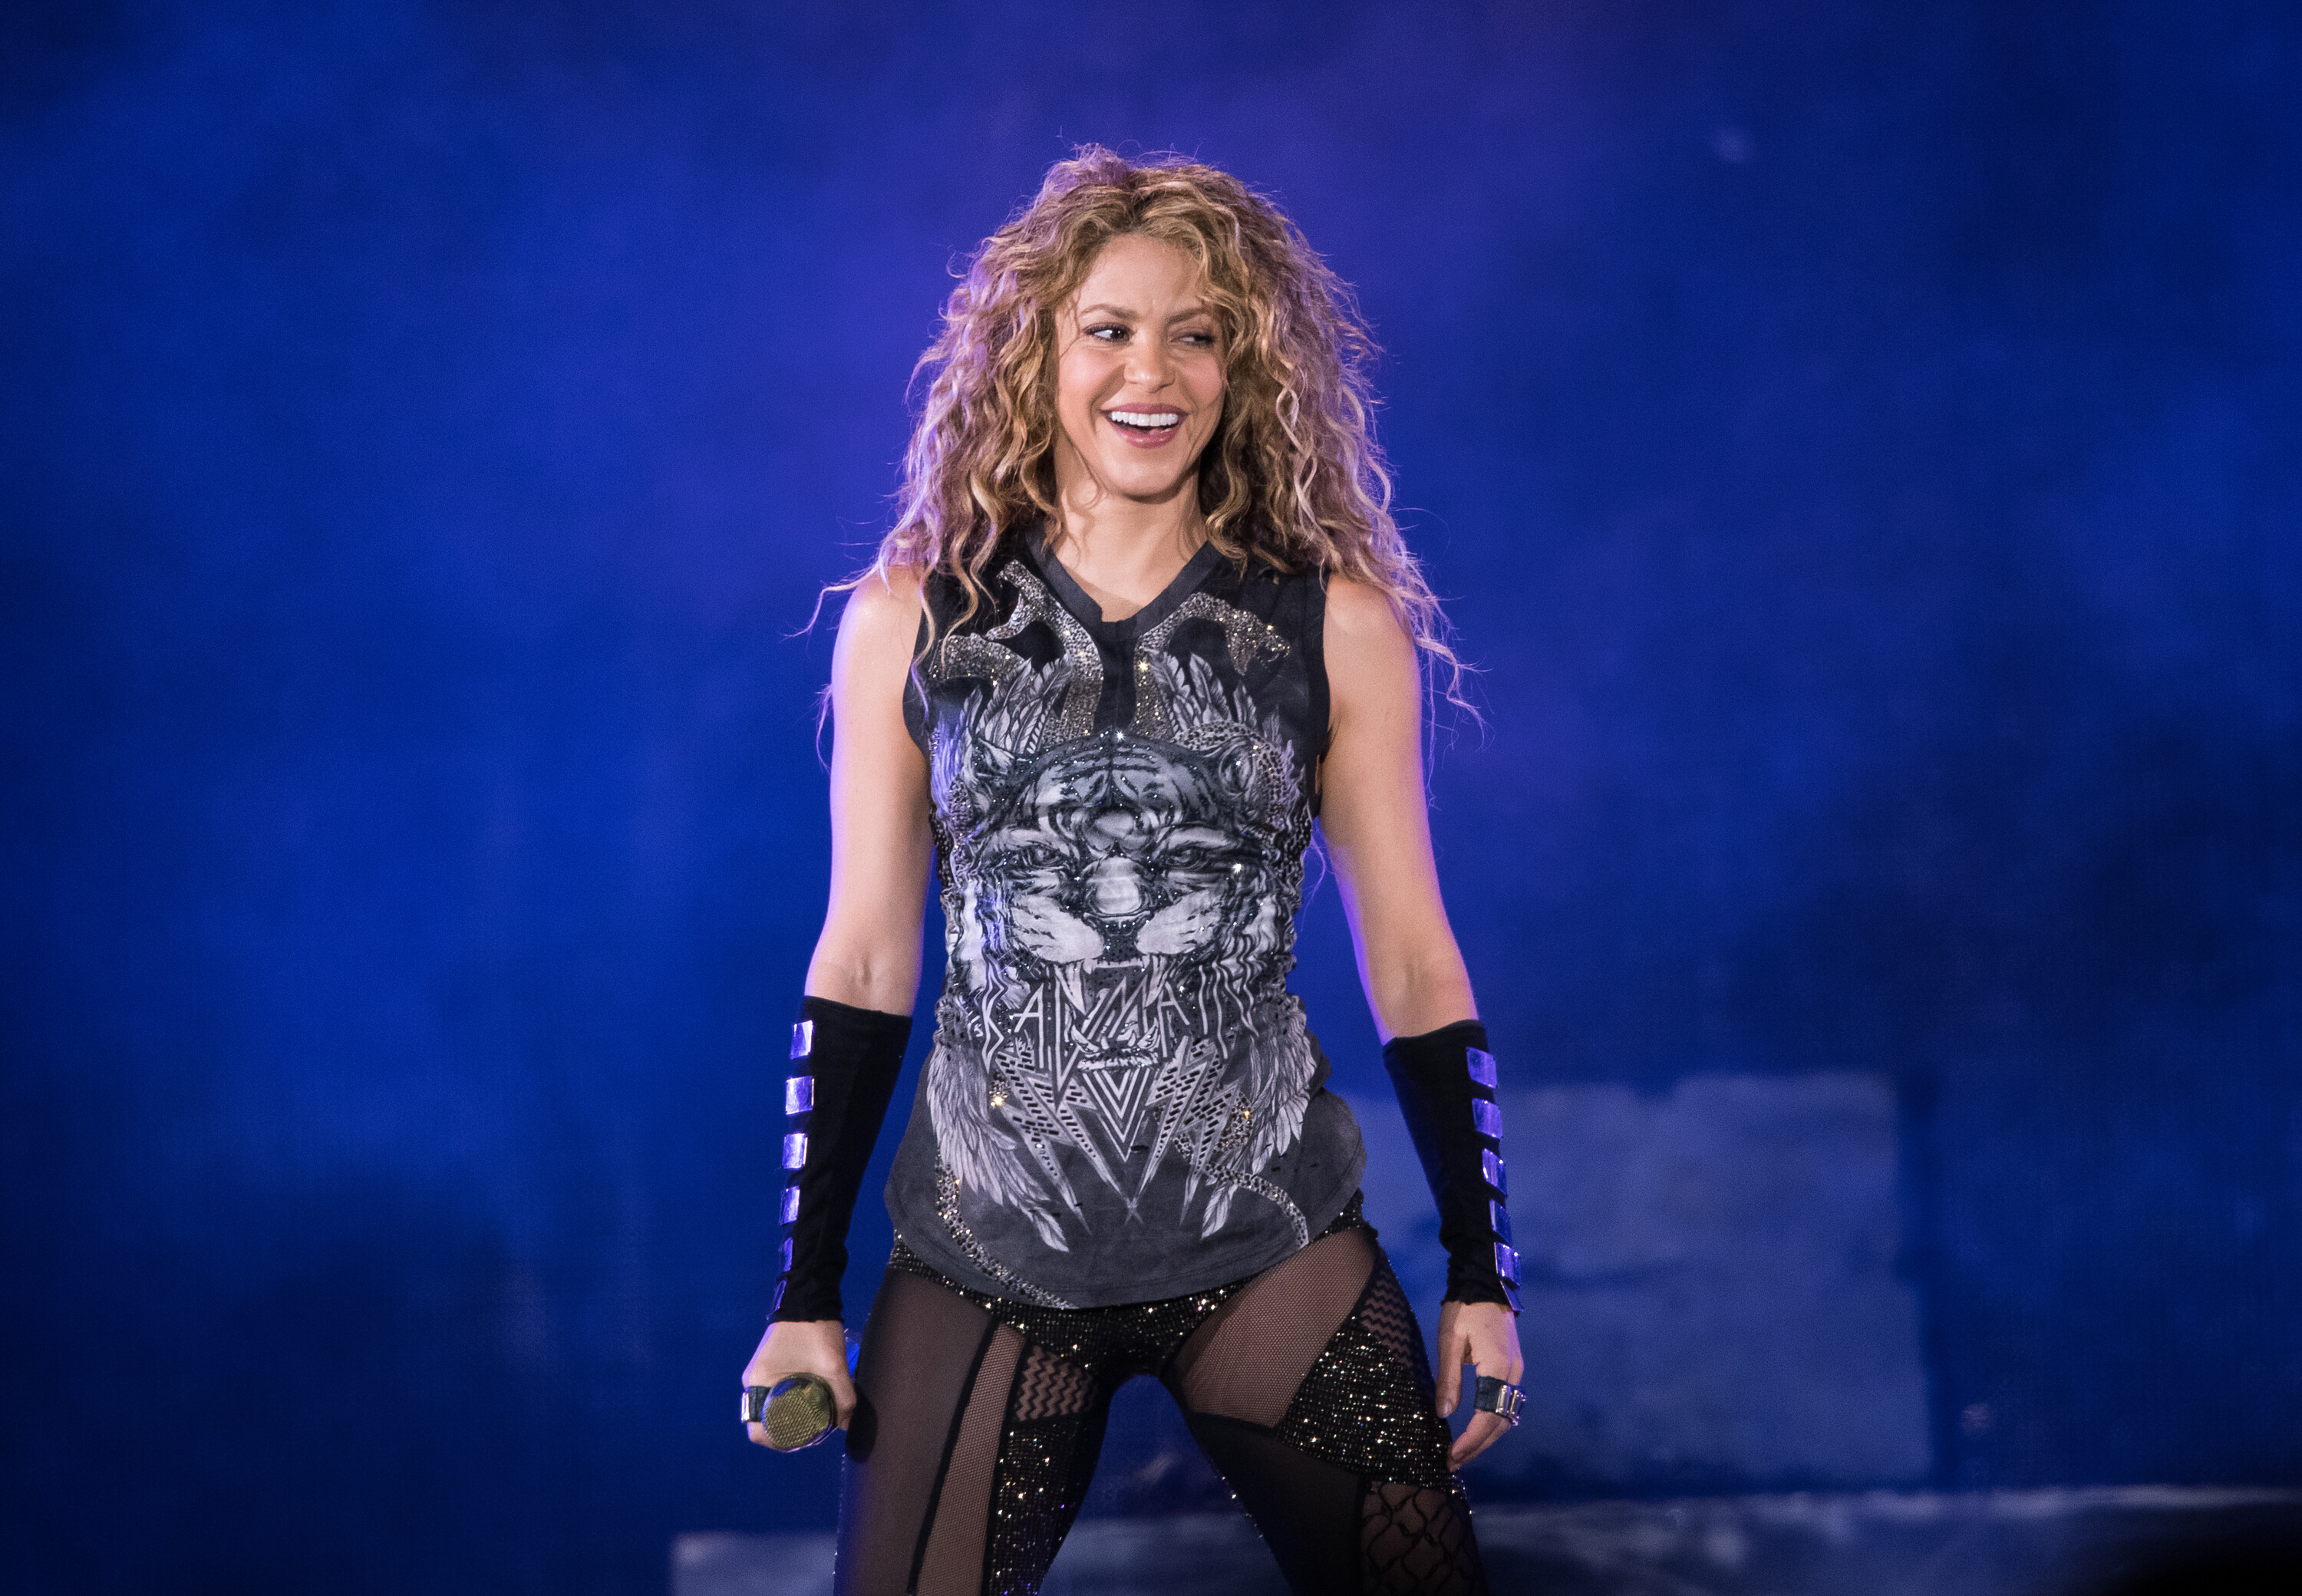 Shakira says she was attacked by purse-snatching boars